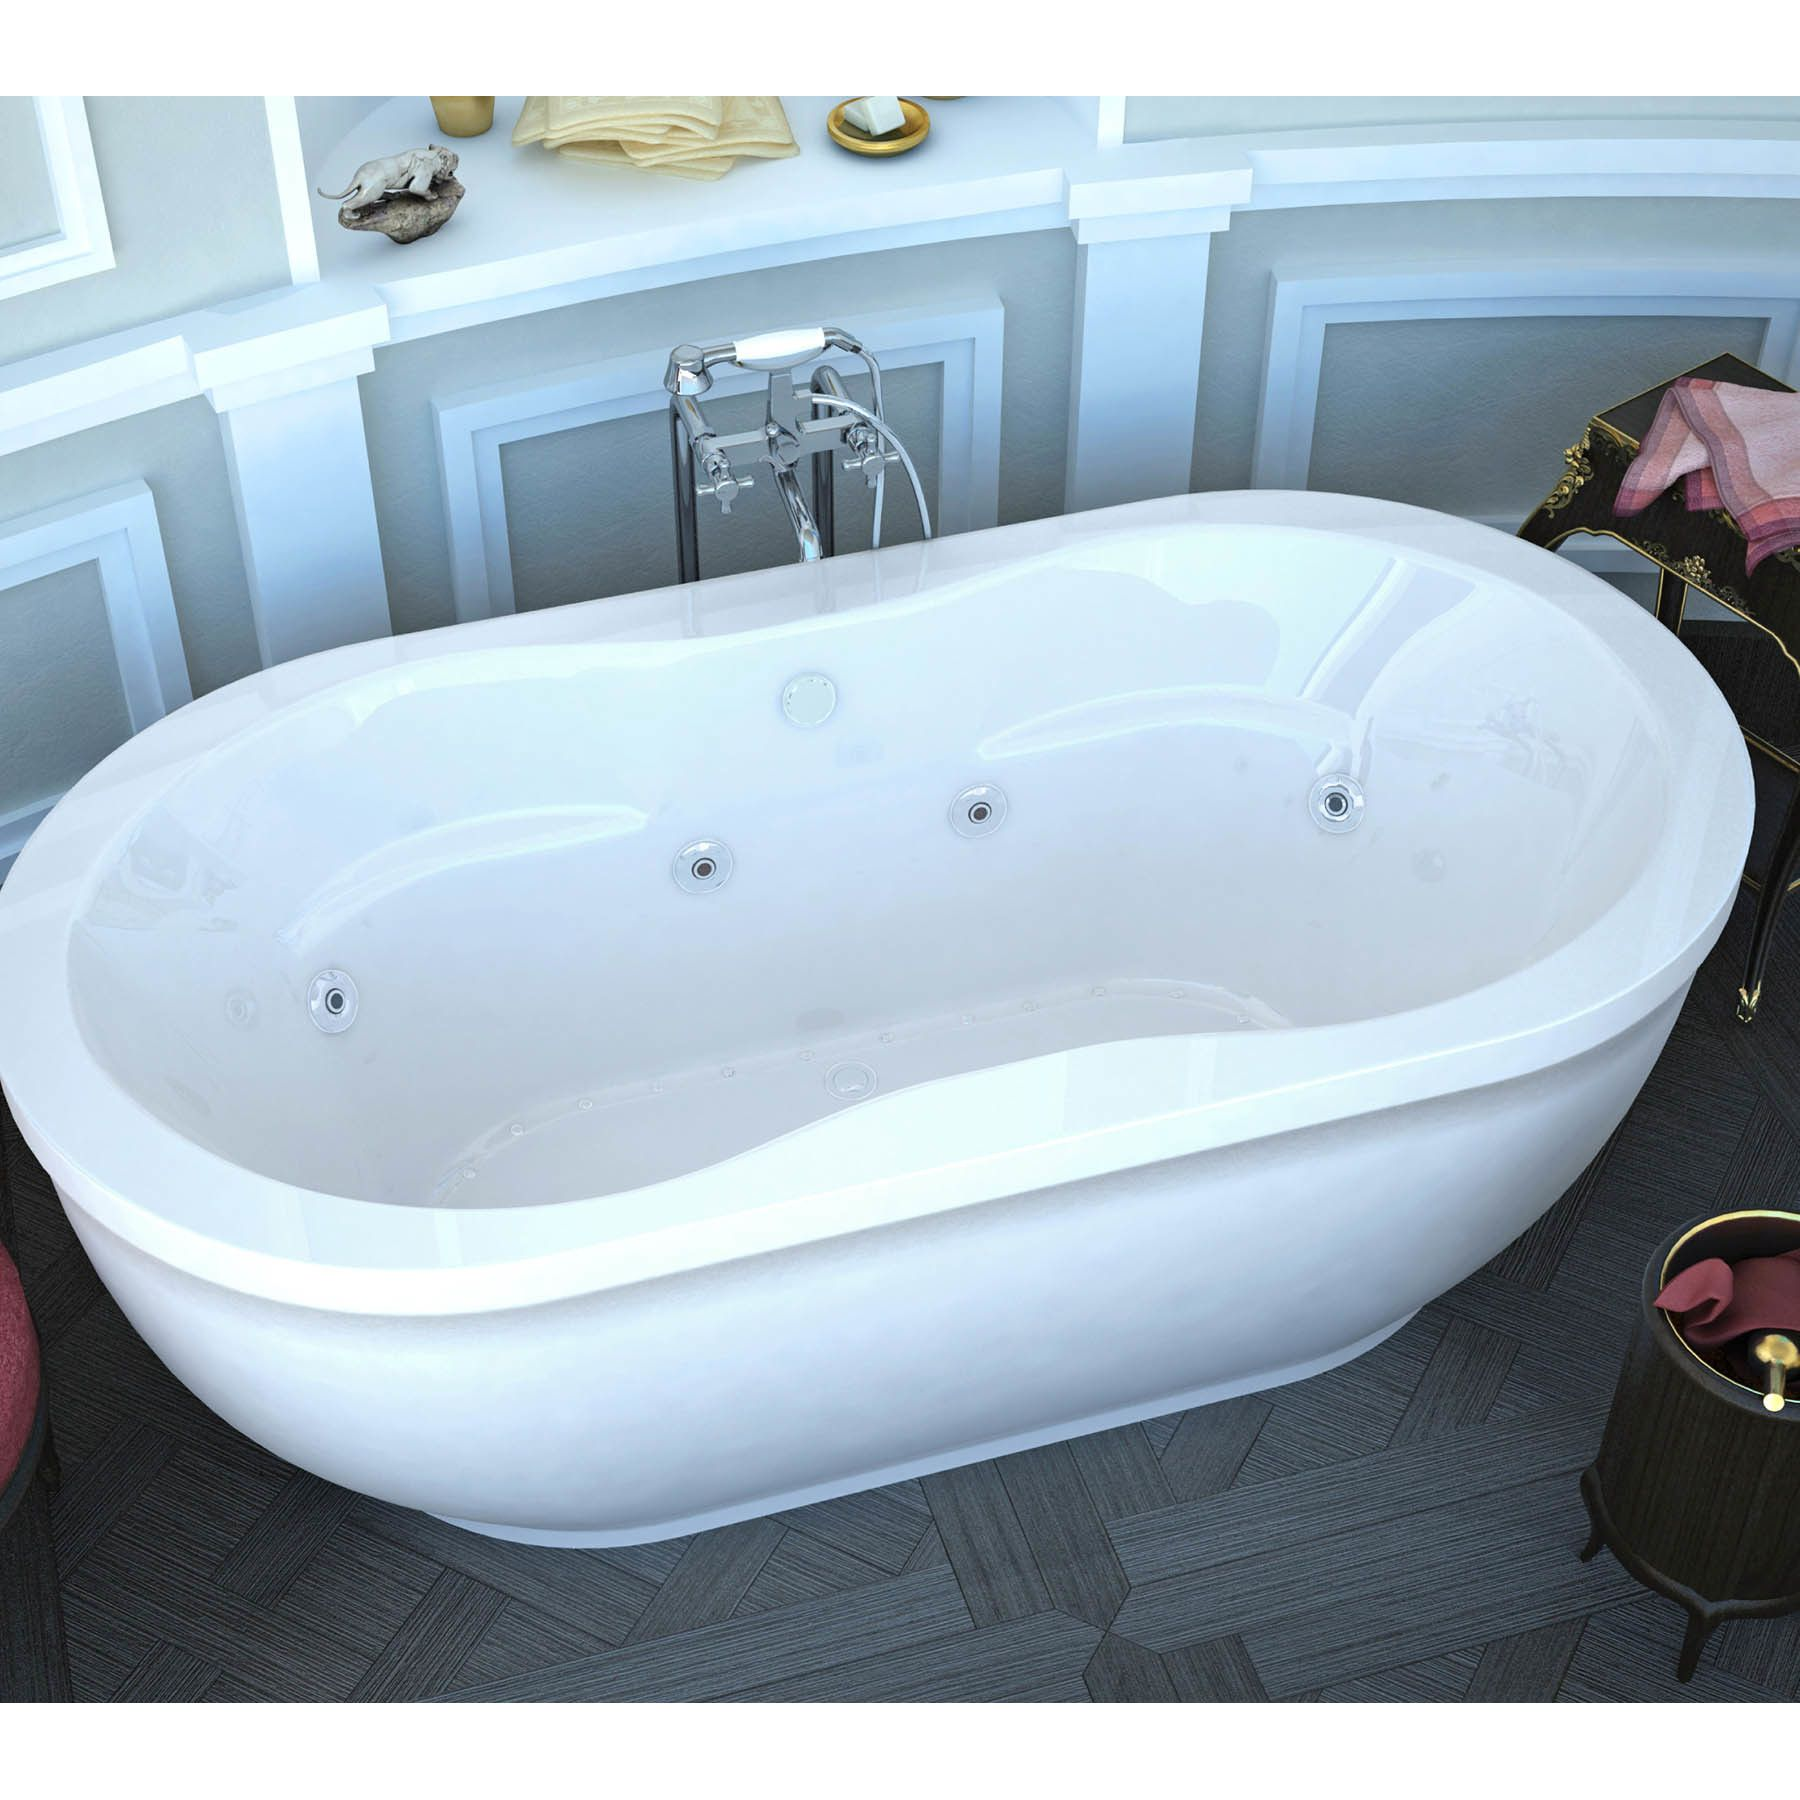 Freestanding Whirlpool Bath